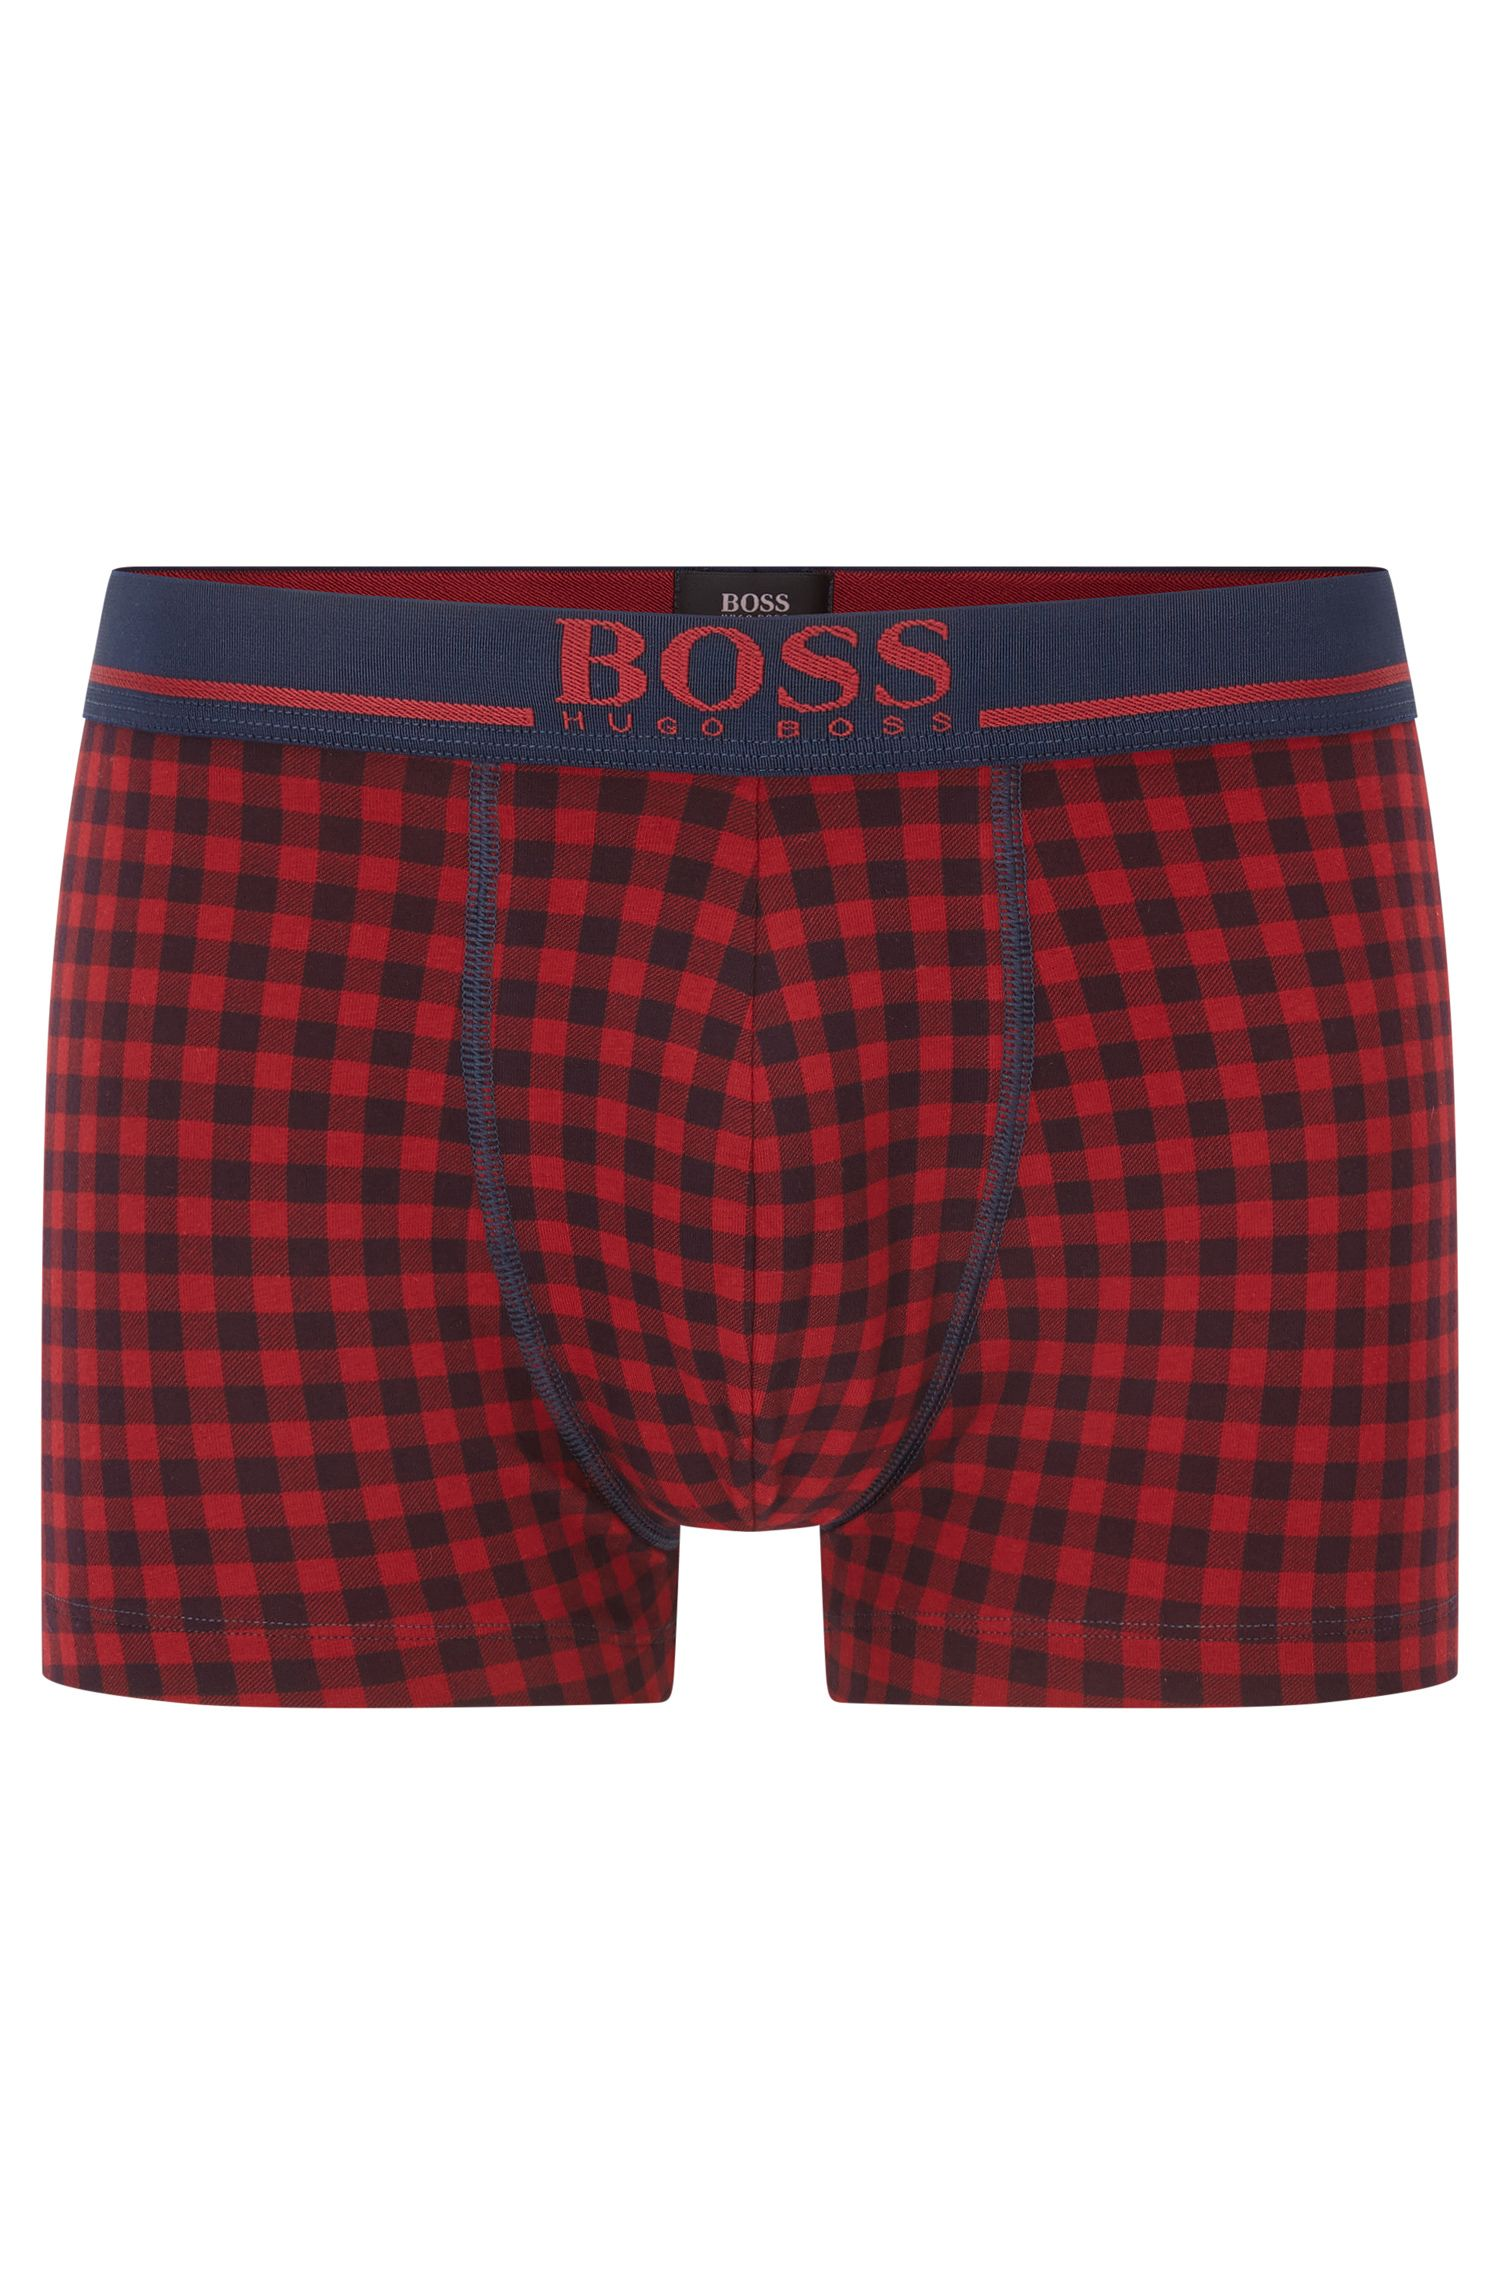 Single-jersey trunks with logo waistband